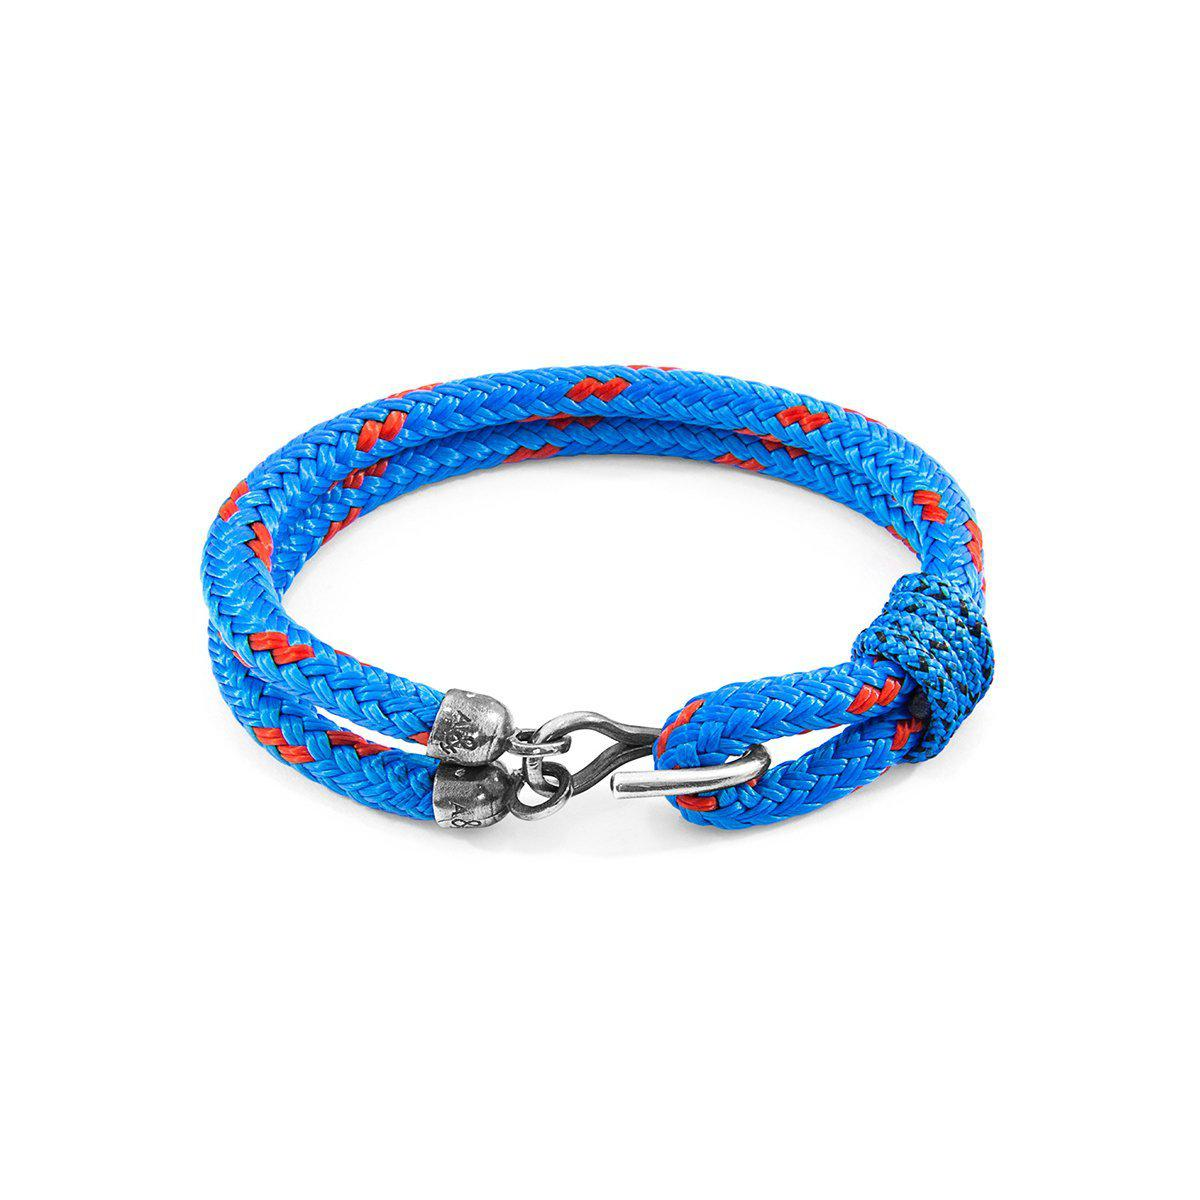 Anchor & Crew Blue Great Yarmouth Silver And Rope Bracelet - 21cm nOzQcBaLfY